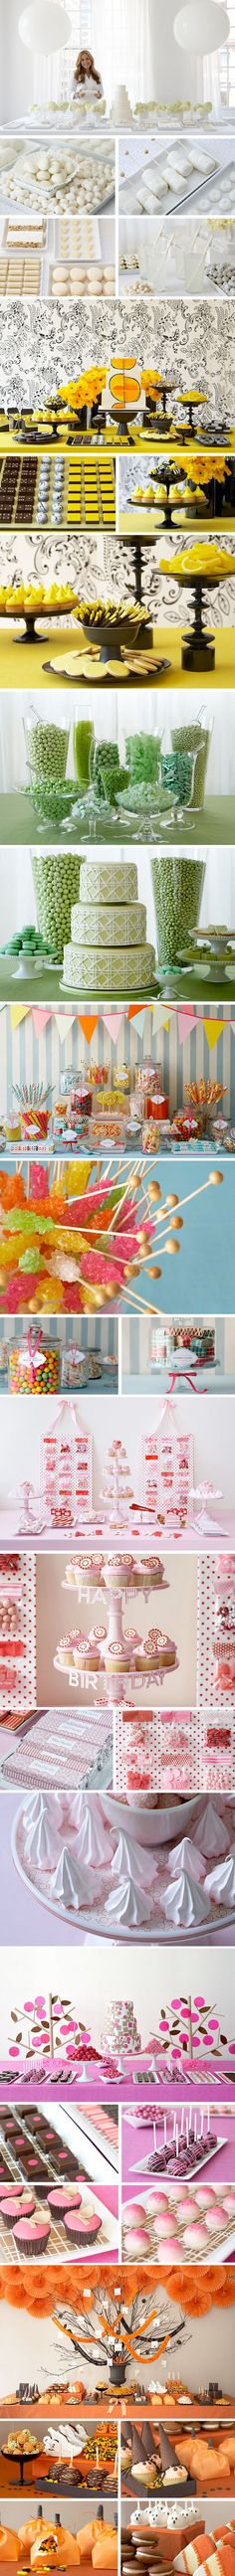 This site has so many fun creative ideas and color combos for birthdays, holidays, showers and weddings.